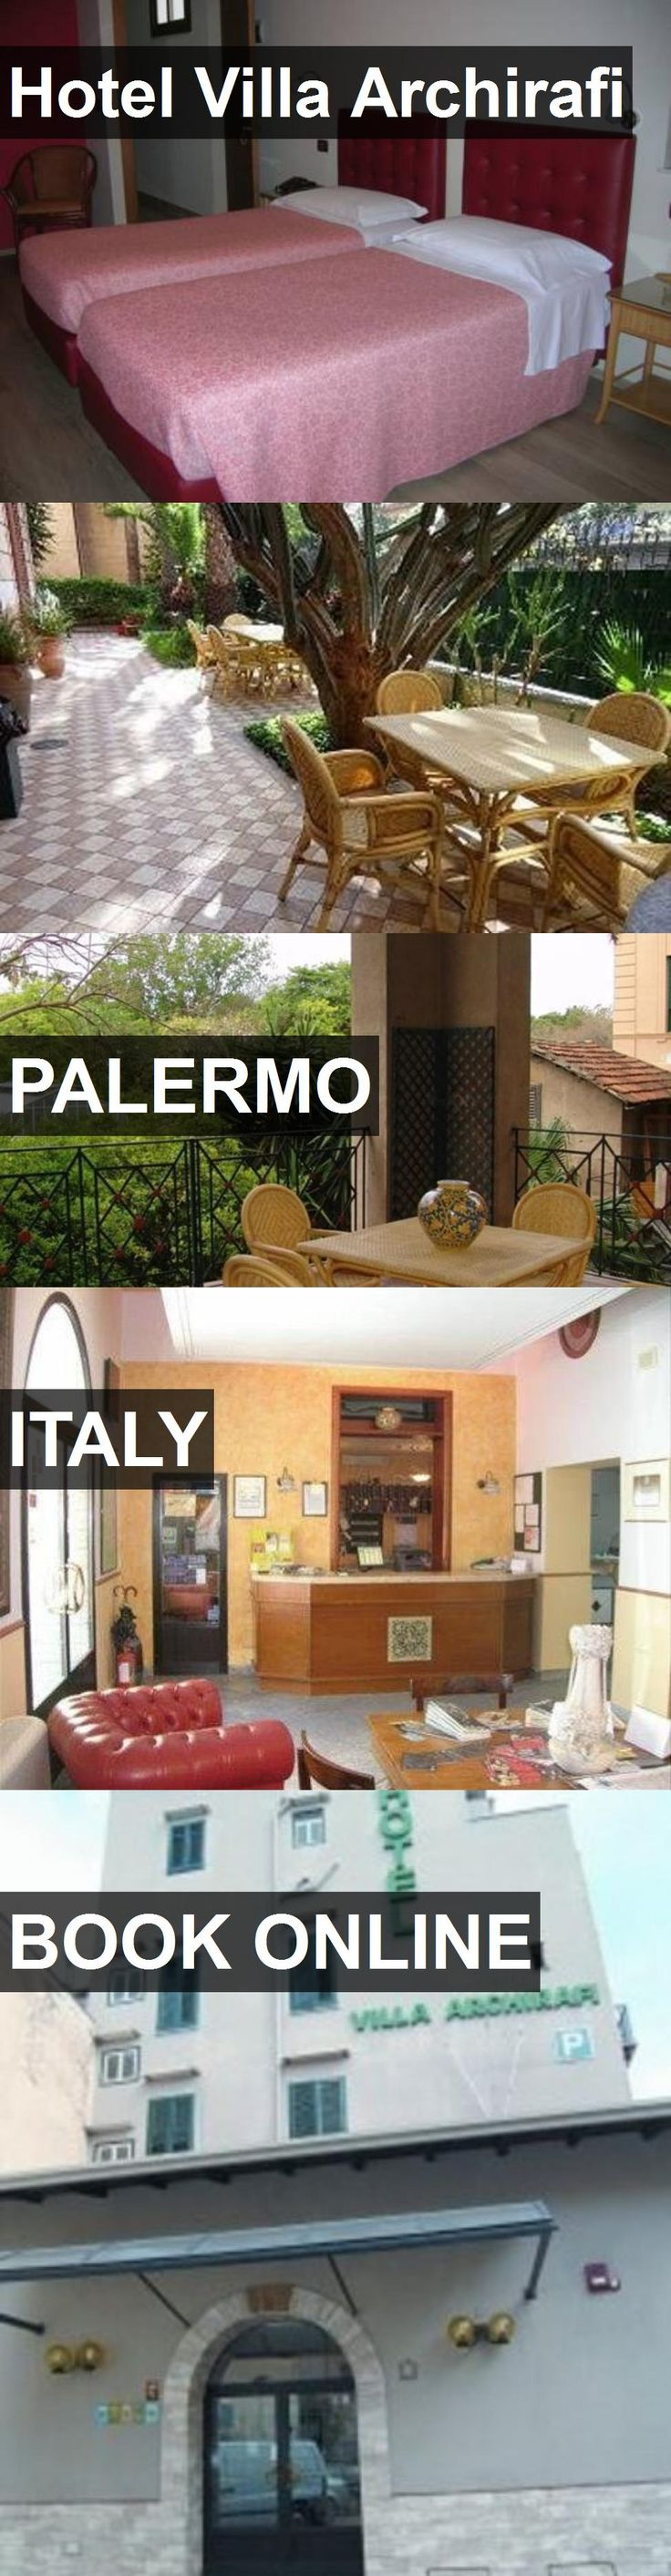 Hotel Hotel Villa Archirafi in Palermo, Italy. For more information, photos, reviews and best prices please follow the link. #Italy #Palermo #HotelVillaArchirafi #hotel #travel #vacation